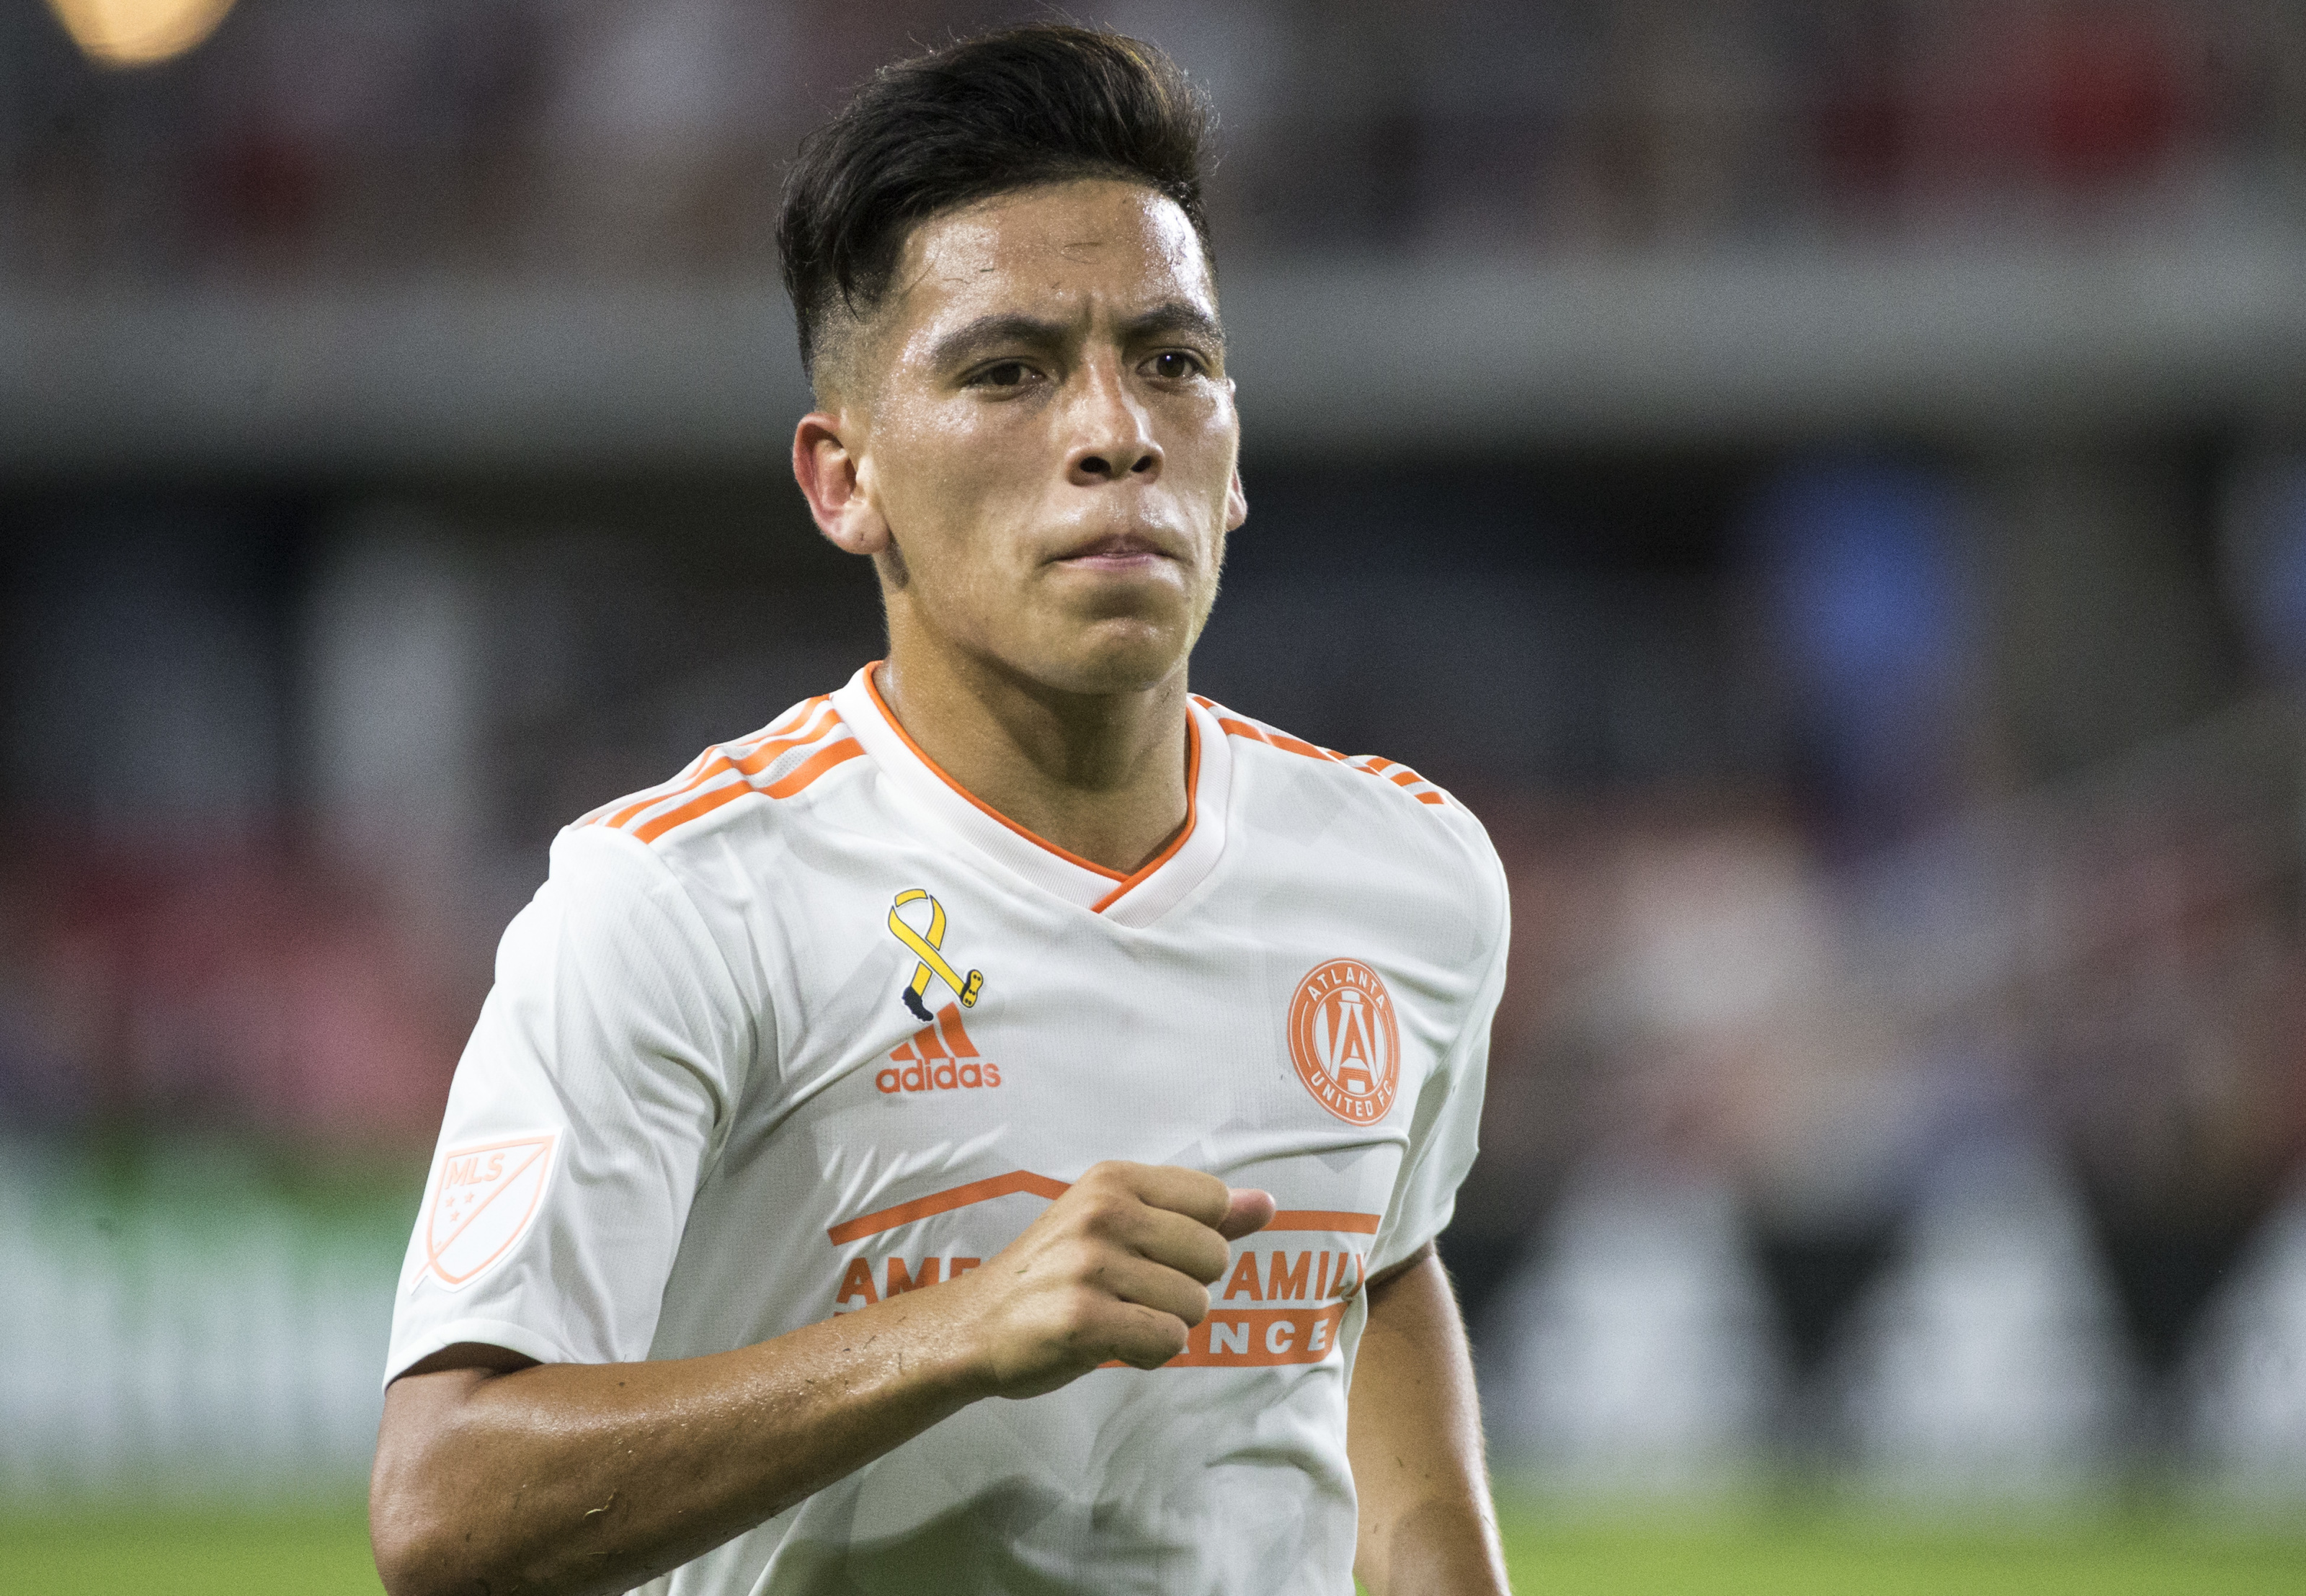 Atlanta United: Why loaning Ezequiel Barco is wrong move